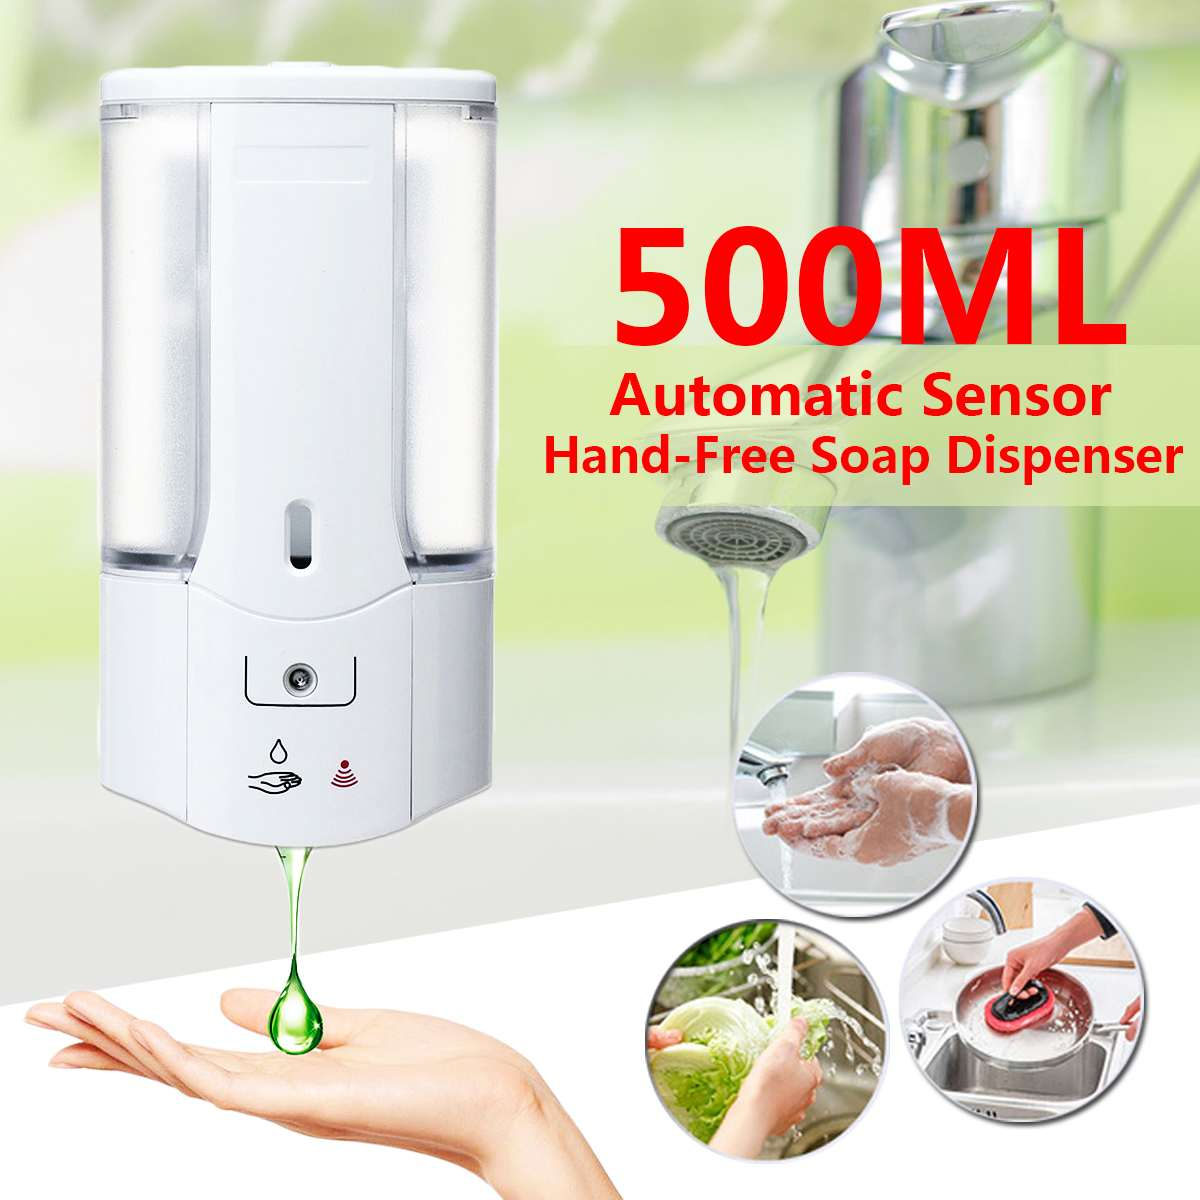 500mL Wall Mounted Automatic Infrared Sensor Hand-Free Soap Dispenser With Cover Bathroom Office Hotel Hand Sanitizer Batteries